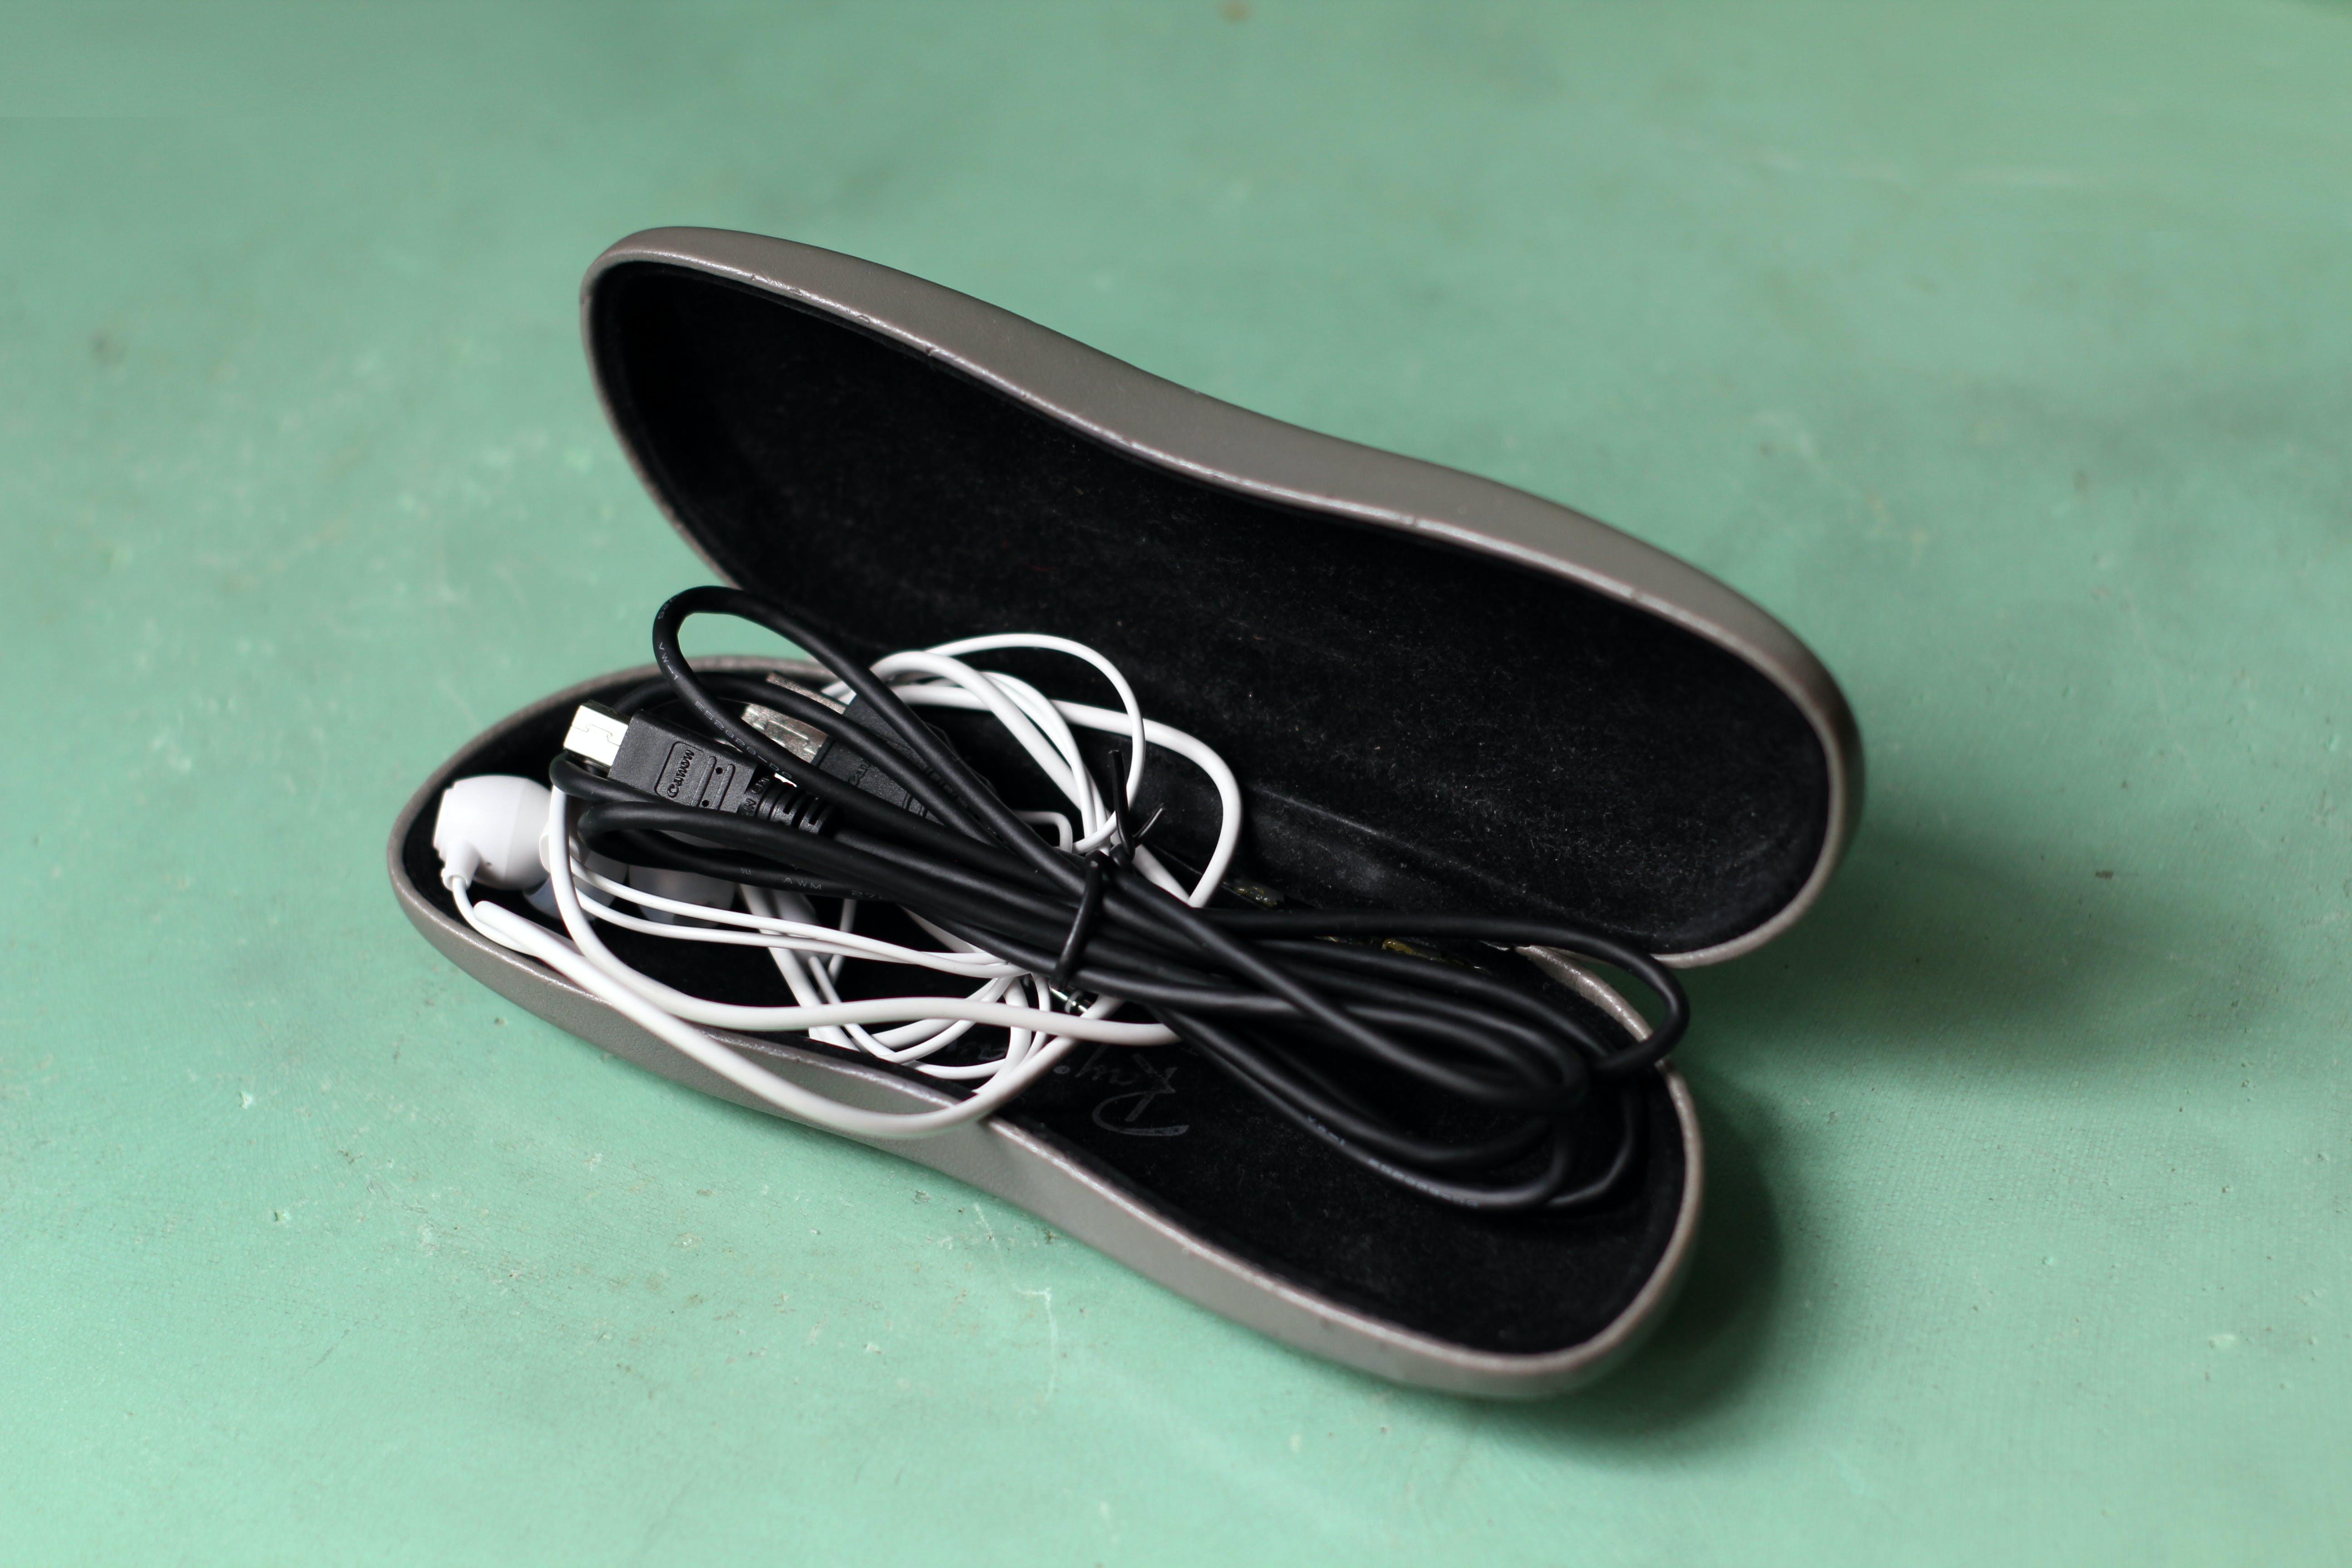 Free stock photo of Sunglasses Case Earphones Ear buds Cables